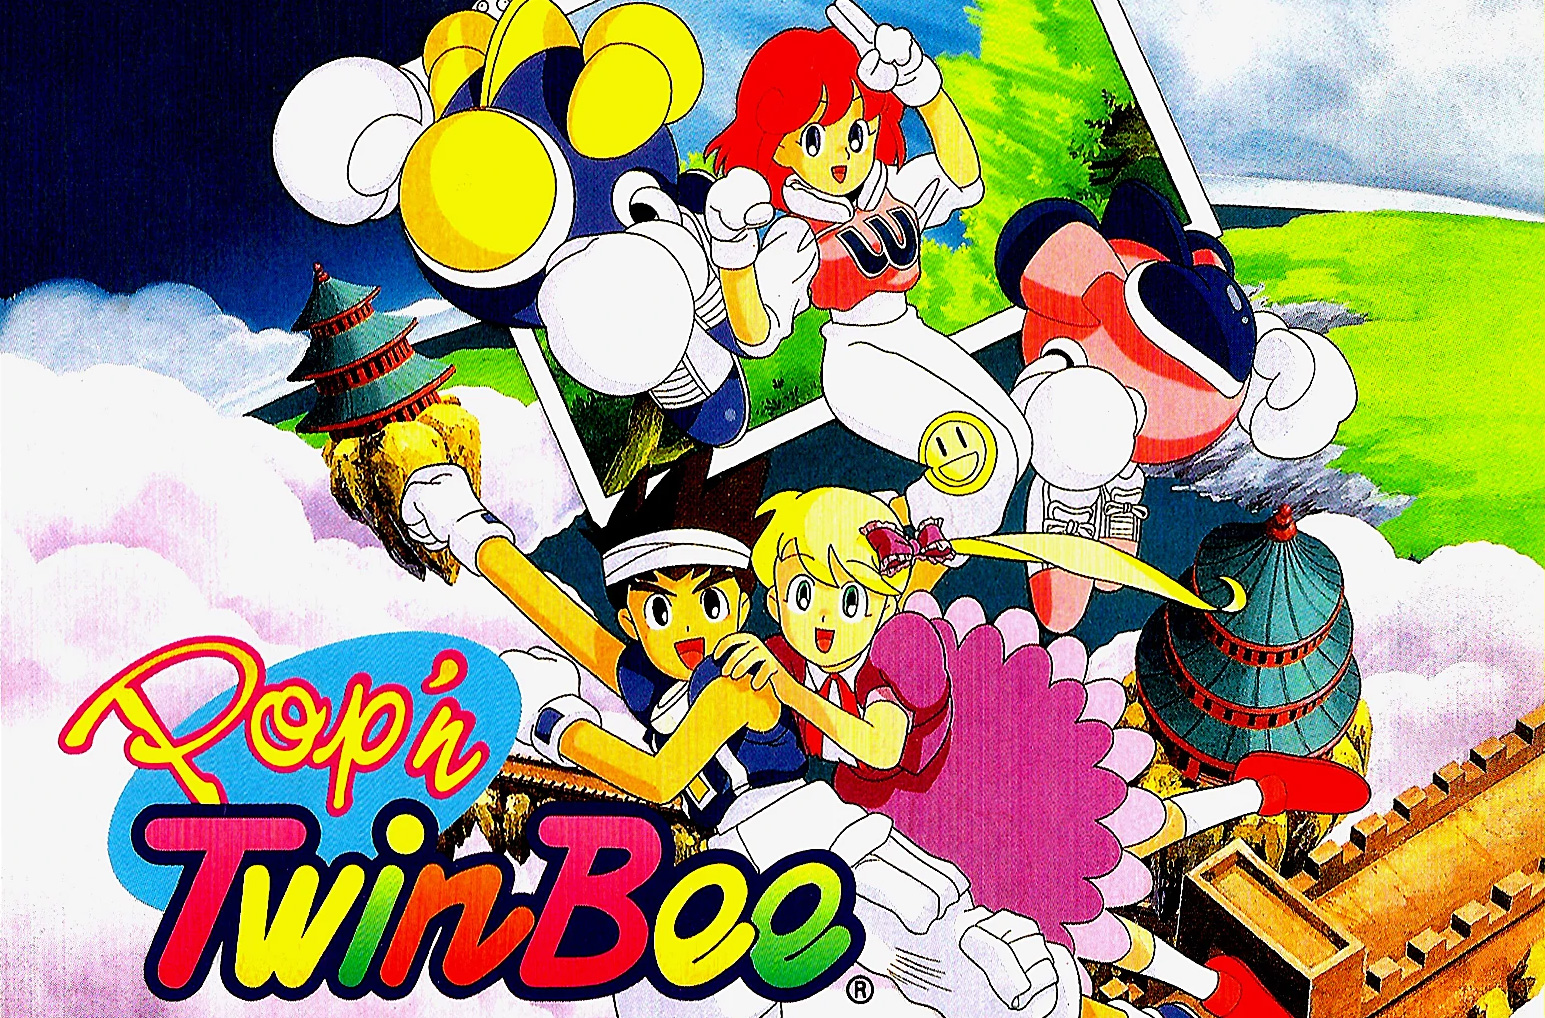 While we wait for new SNES games on Switch, try Pop'n Twinbee screenshot